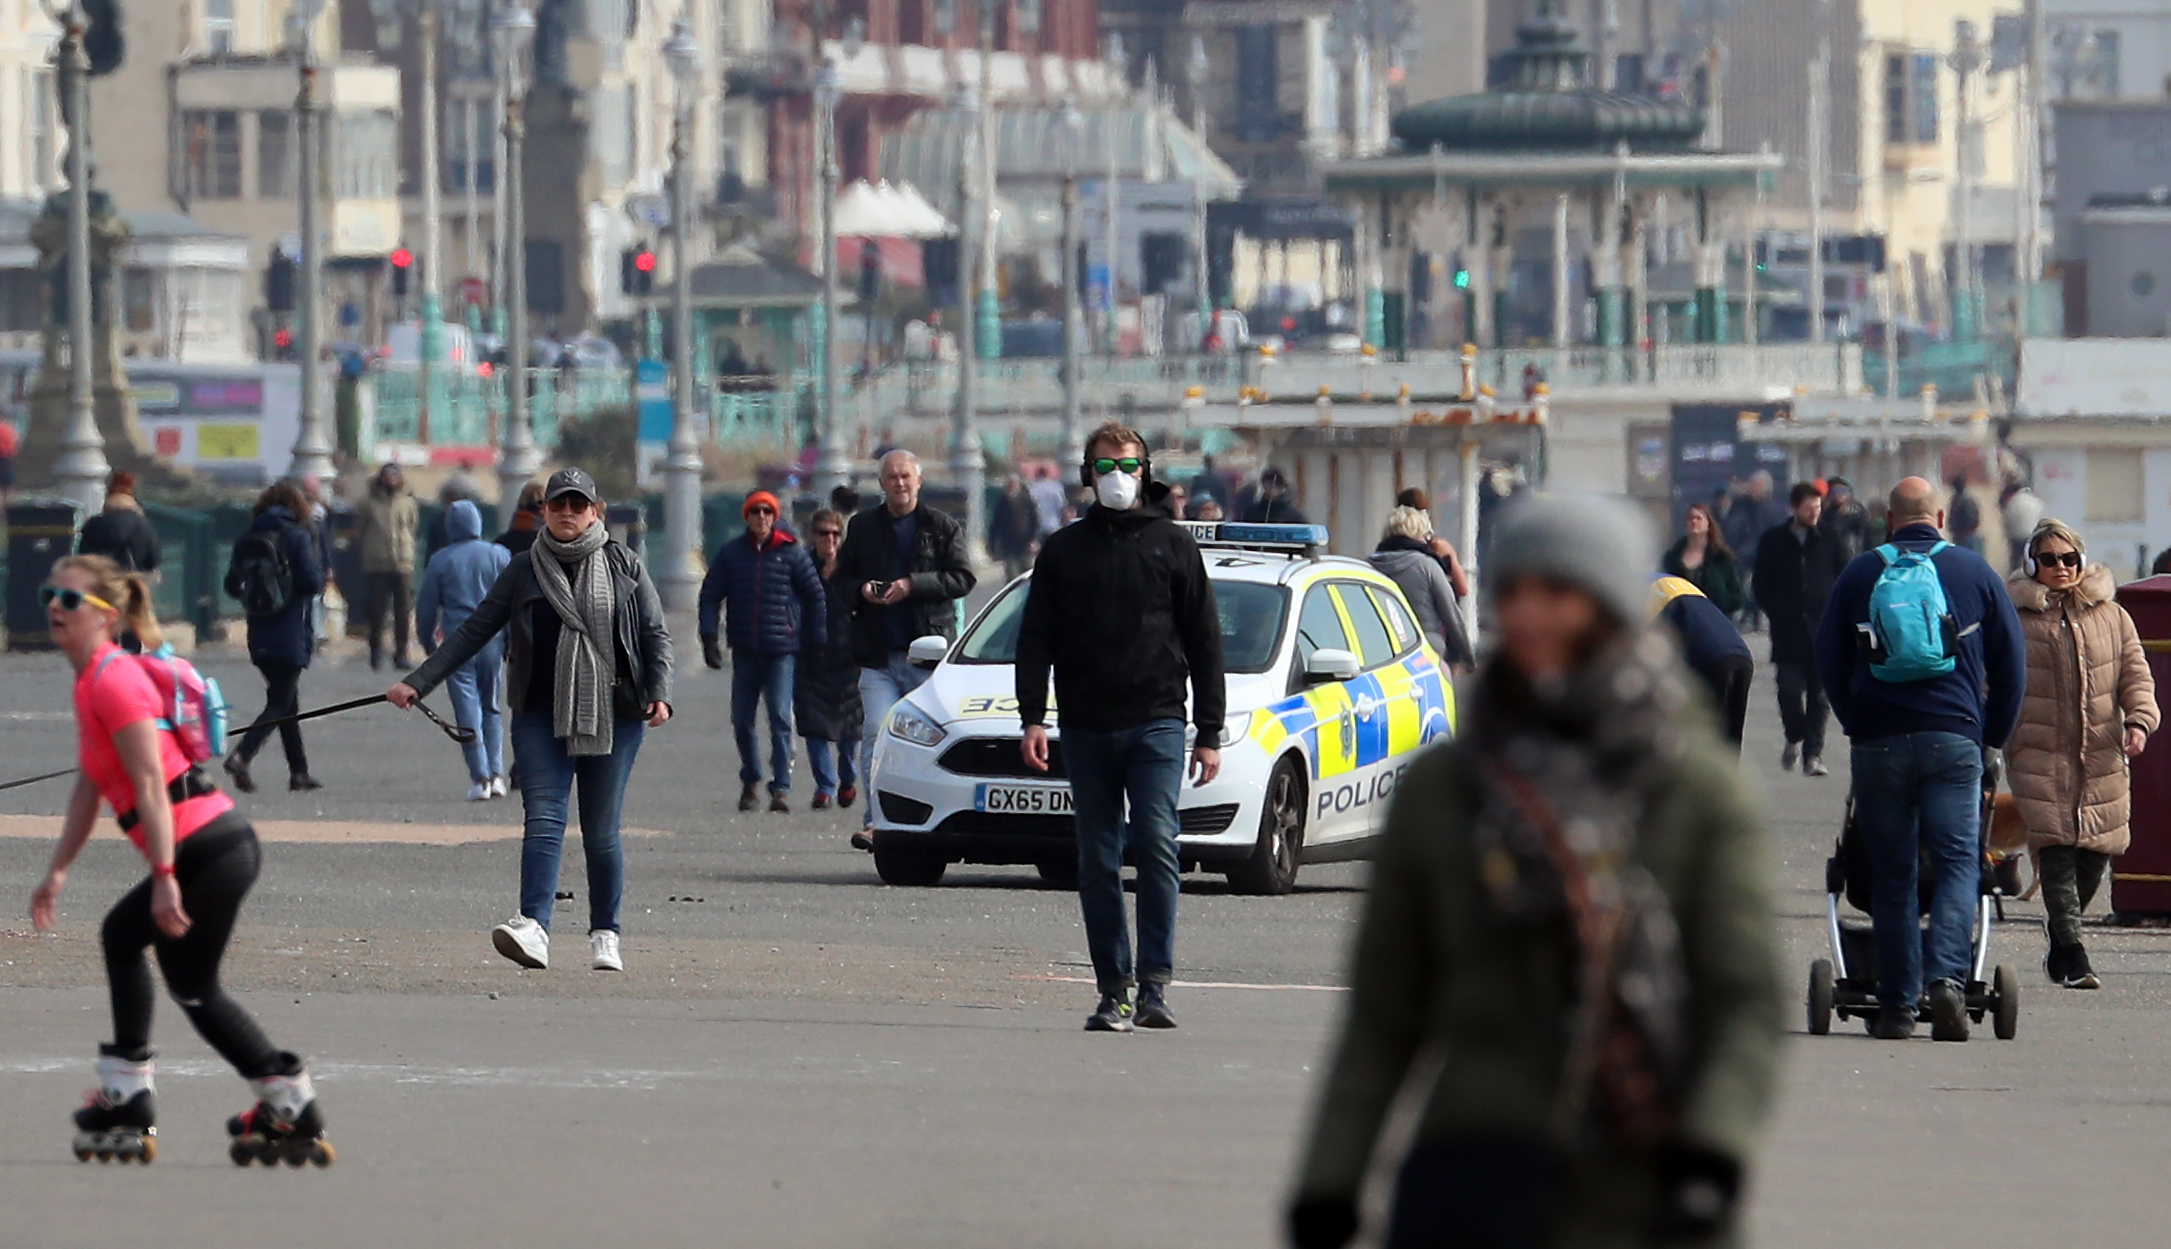 A Sussex Police patrol car moves amongst people walking along the promenade in Brighton as the UK continues in lockdown to help curb the spread of the coronavirus. (Photo by Gareth Fuller/PA Images via Getty Images)